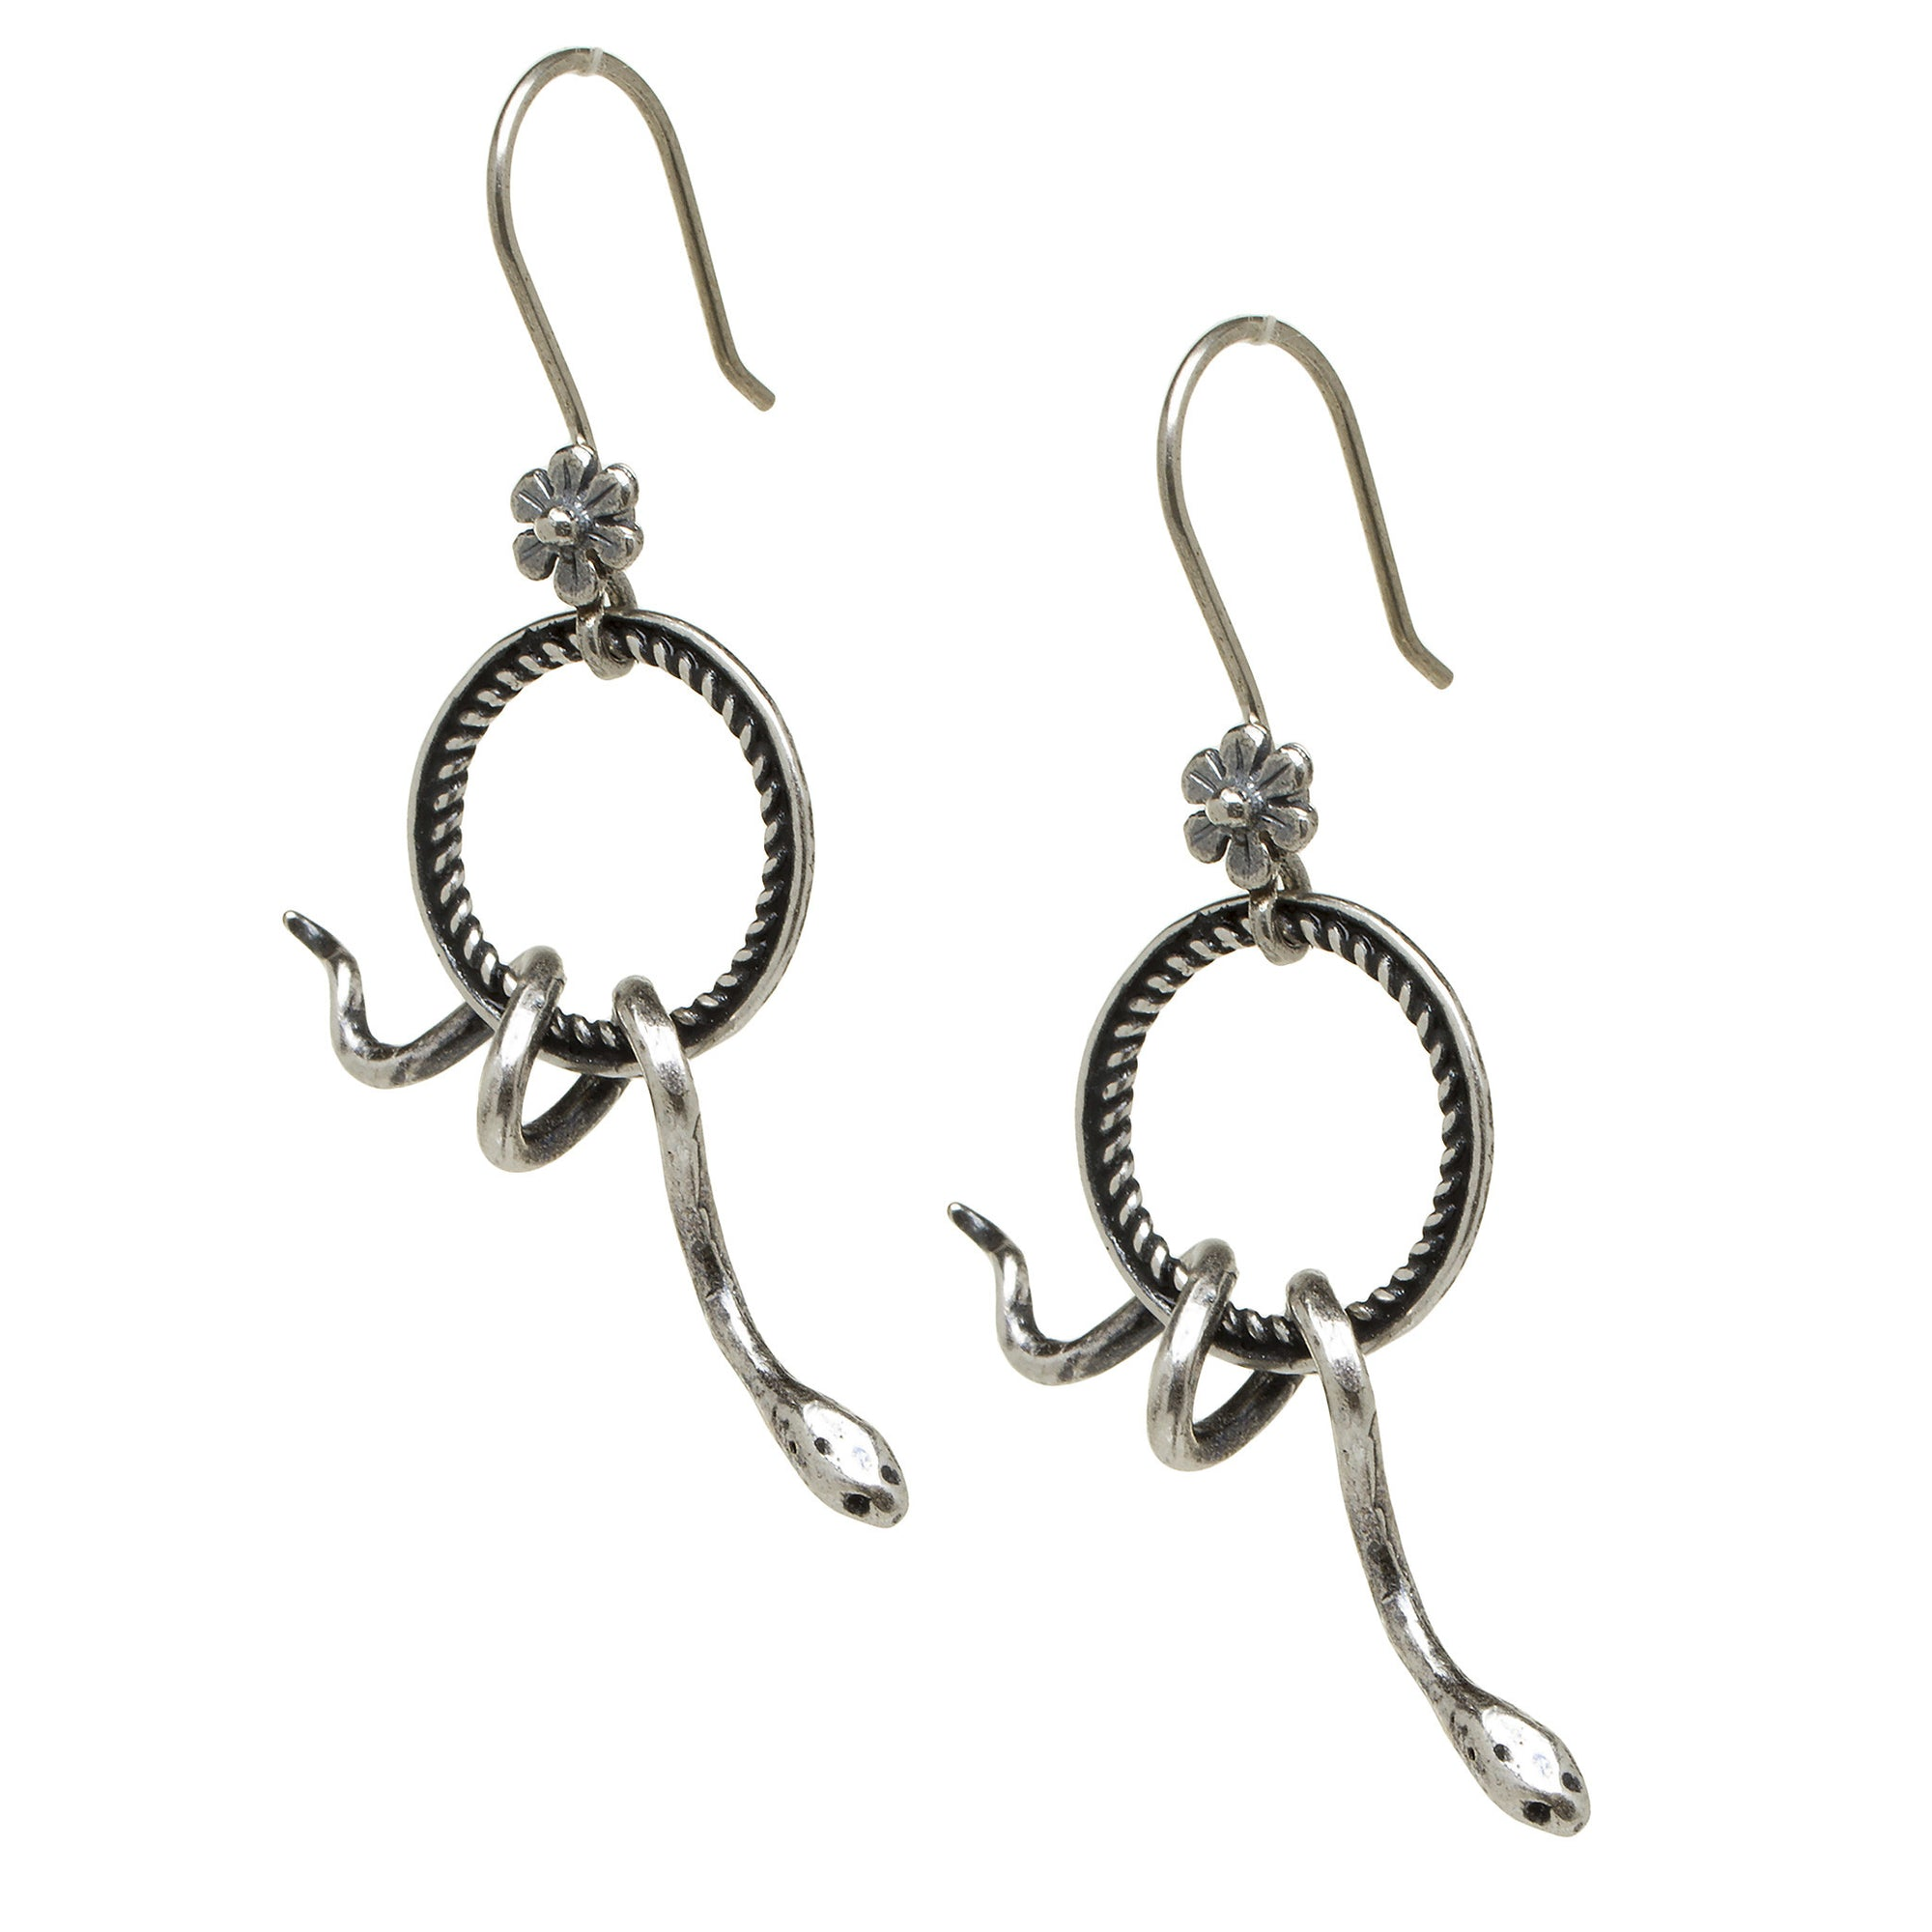 Snake Earrings - Silver-Plated